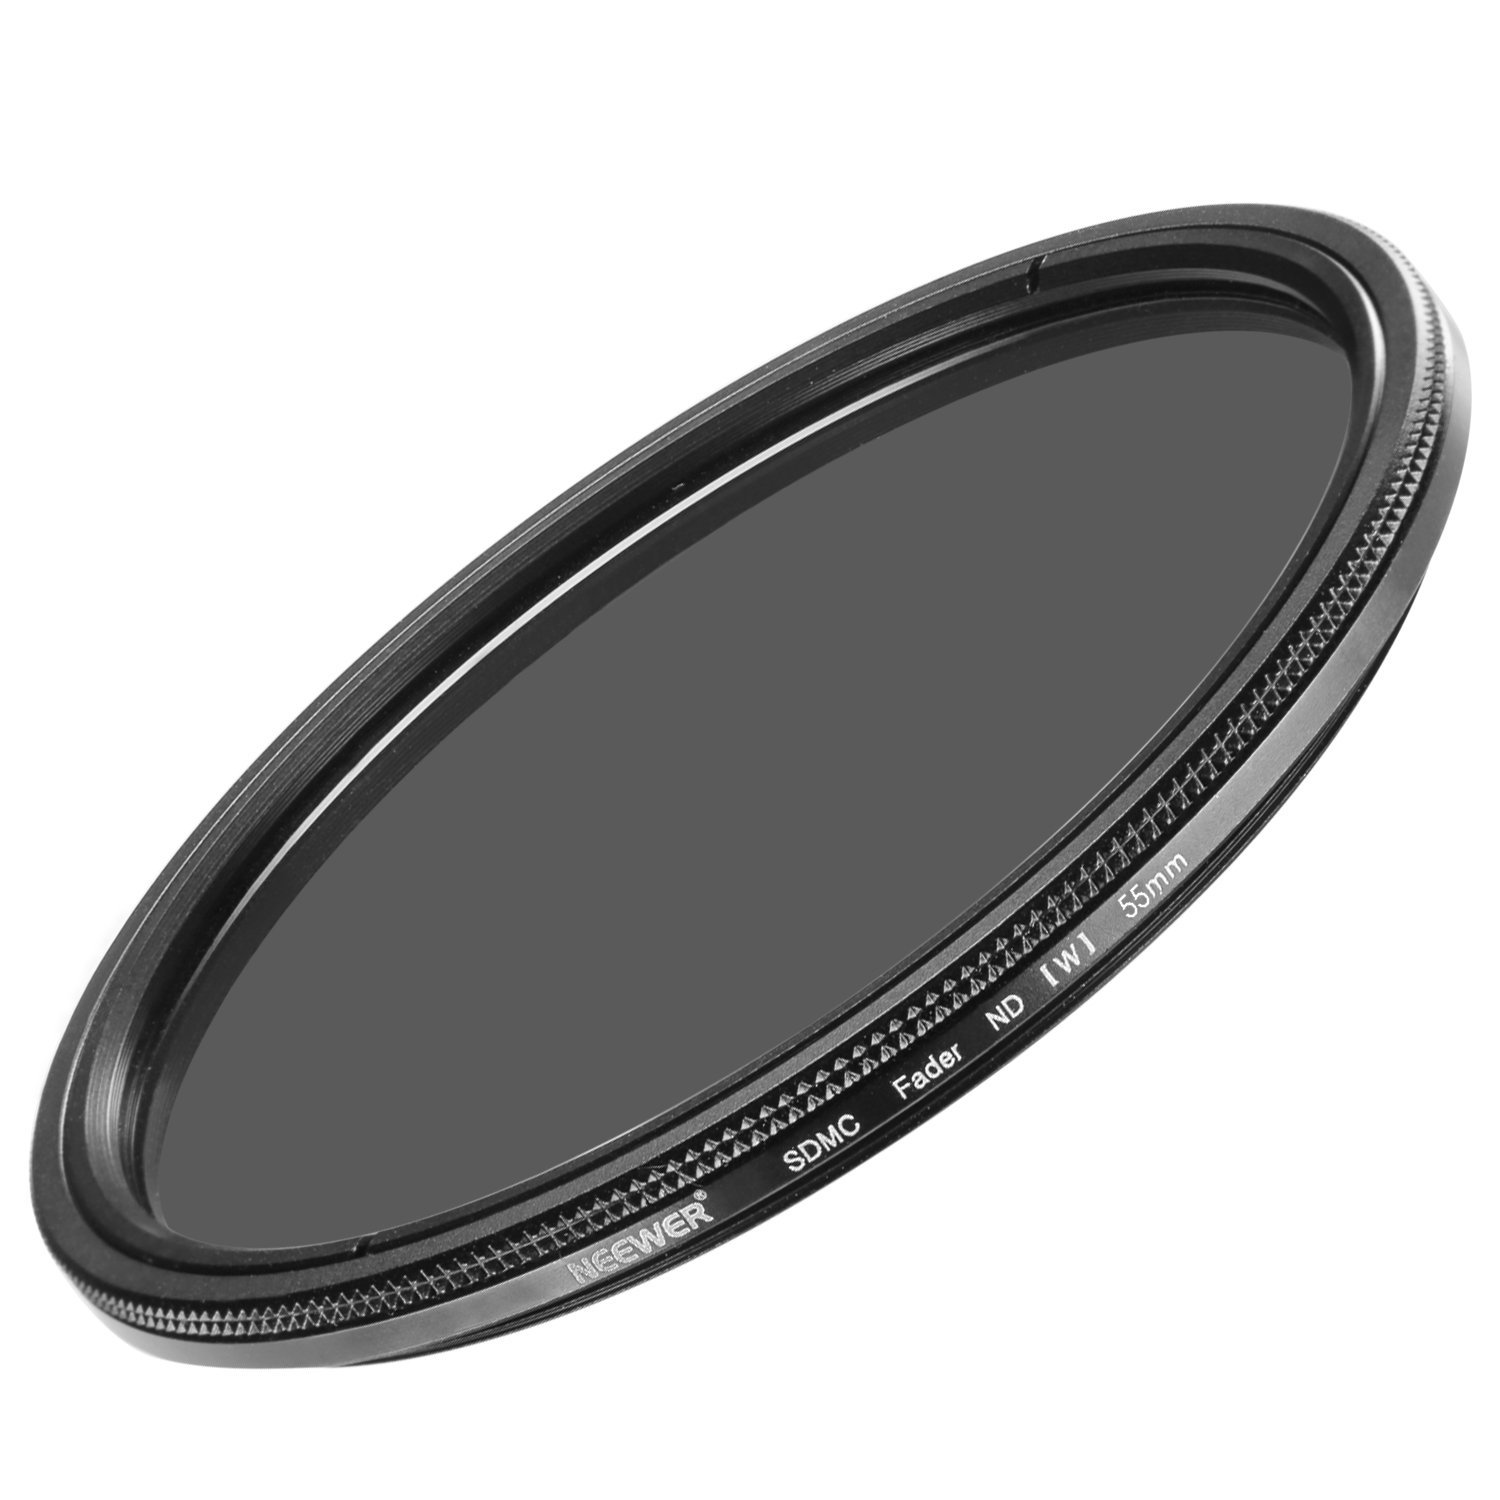 Neewer 55MM Ultra Slim ND2-ND400 Fader Neutral Density Adjustable Lens Filter for Camera Lens with 49MM Filter Thread Size, Made of Optical Class by Neewer